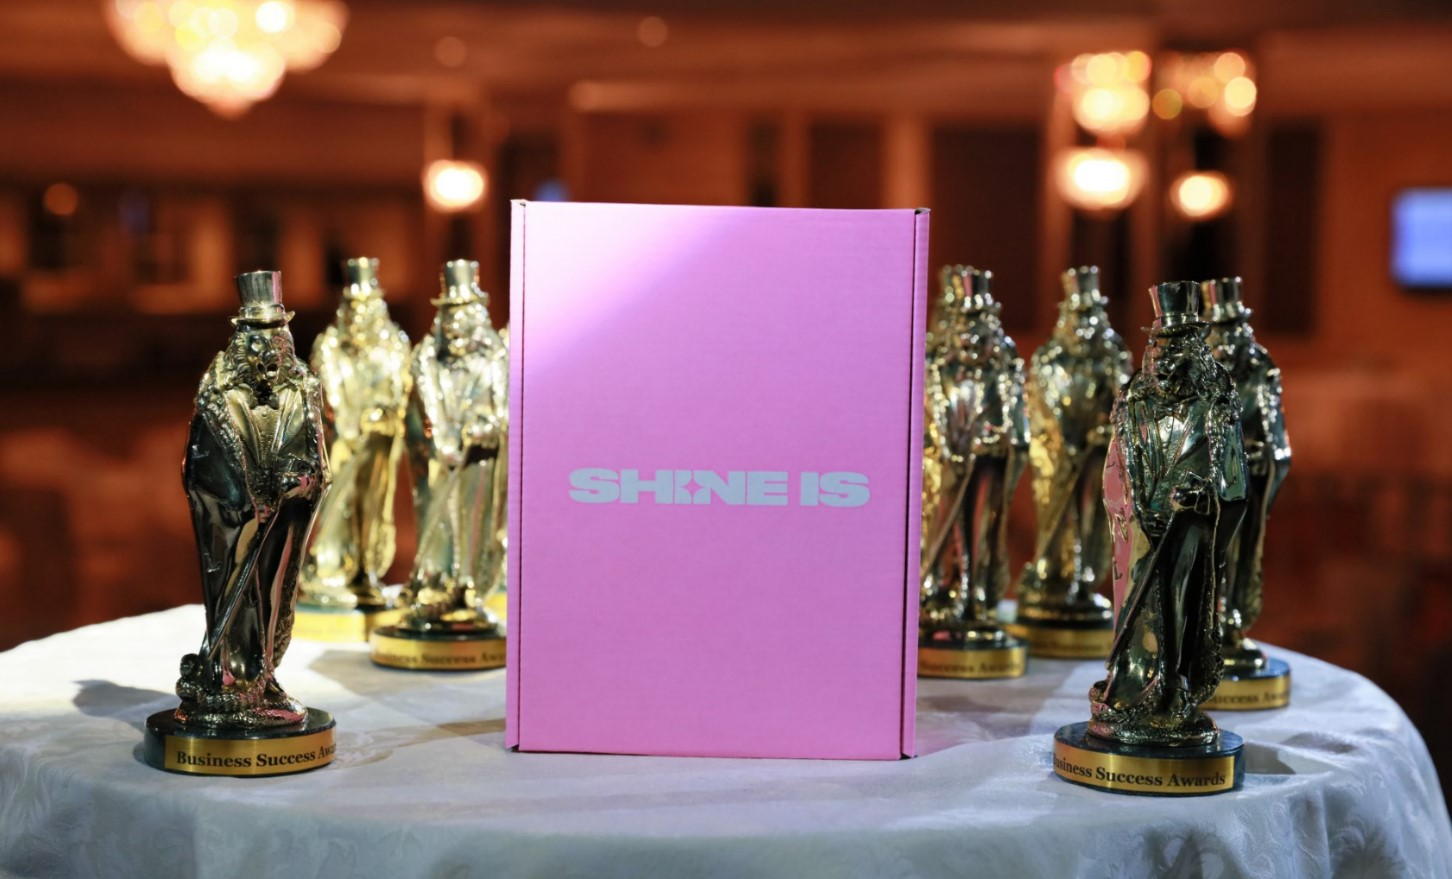 shine-is-business-success-awards-2019-womens-time-1